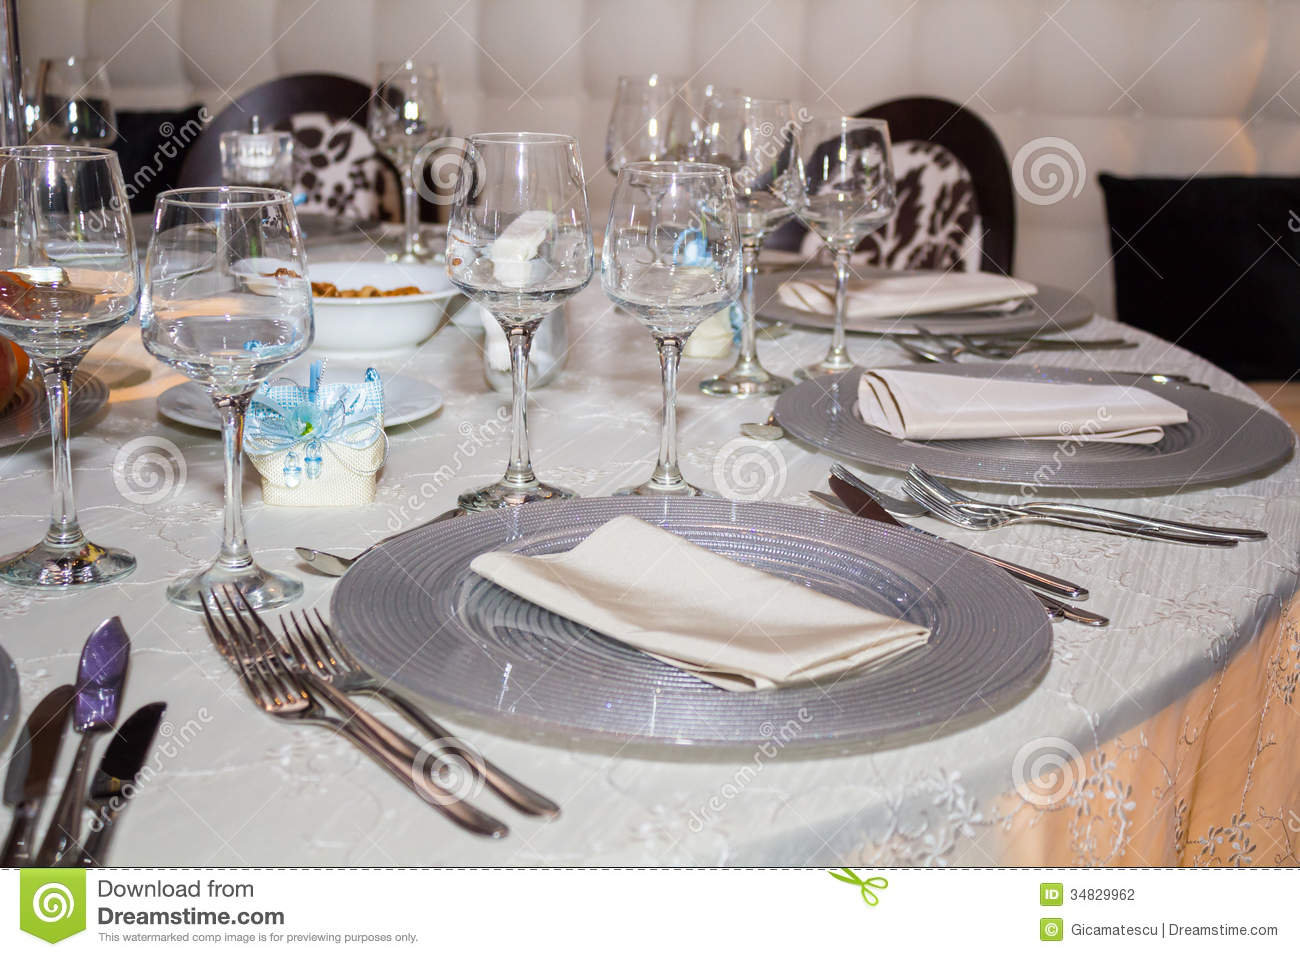 Table Set Up Stock Photo. Image Of Chair, Drink, Food